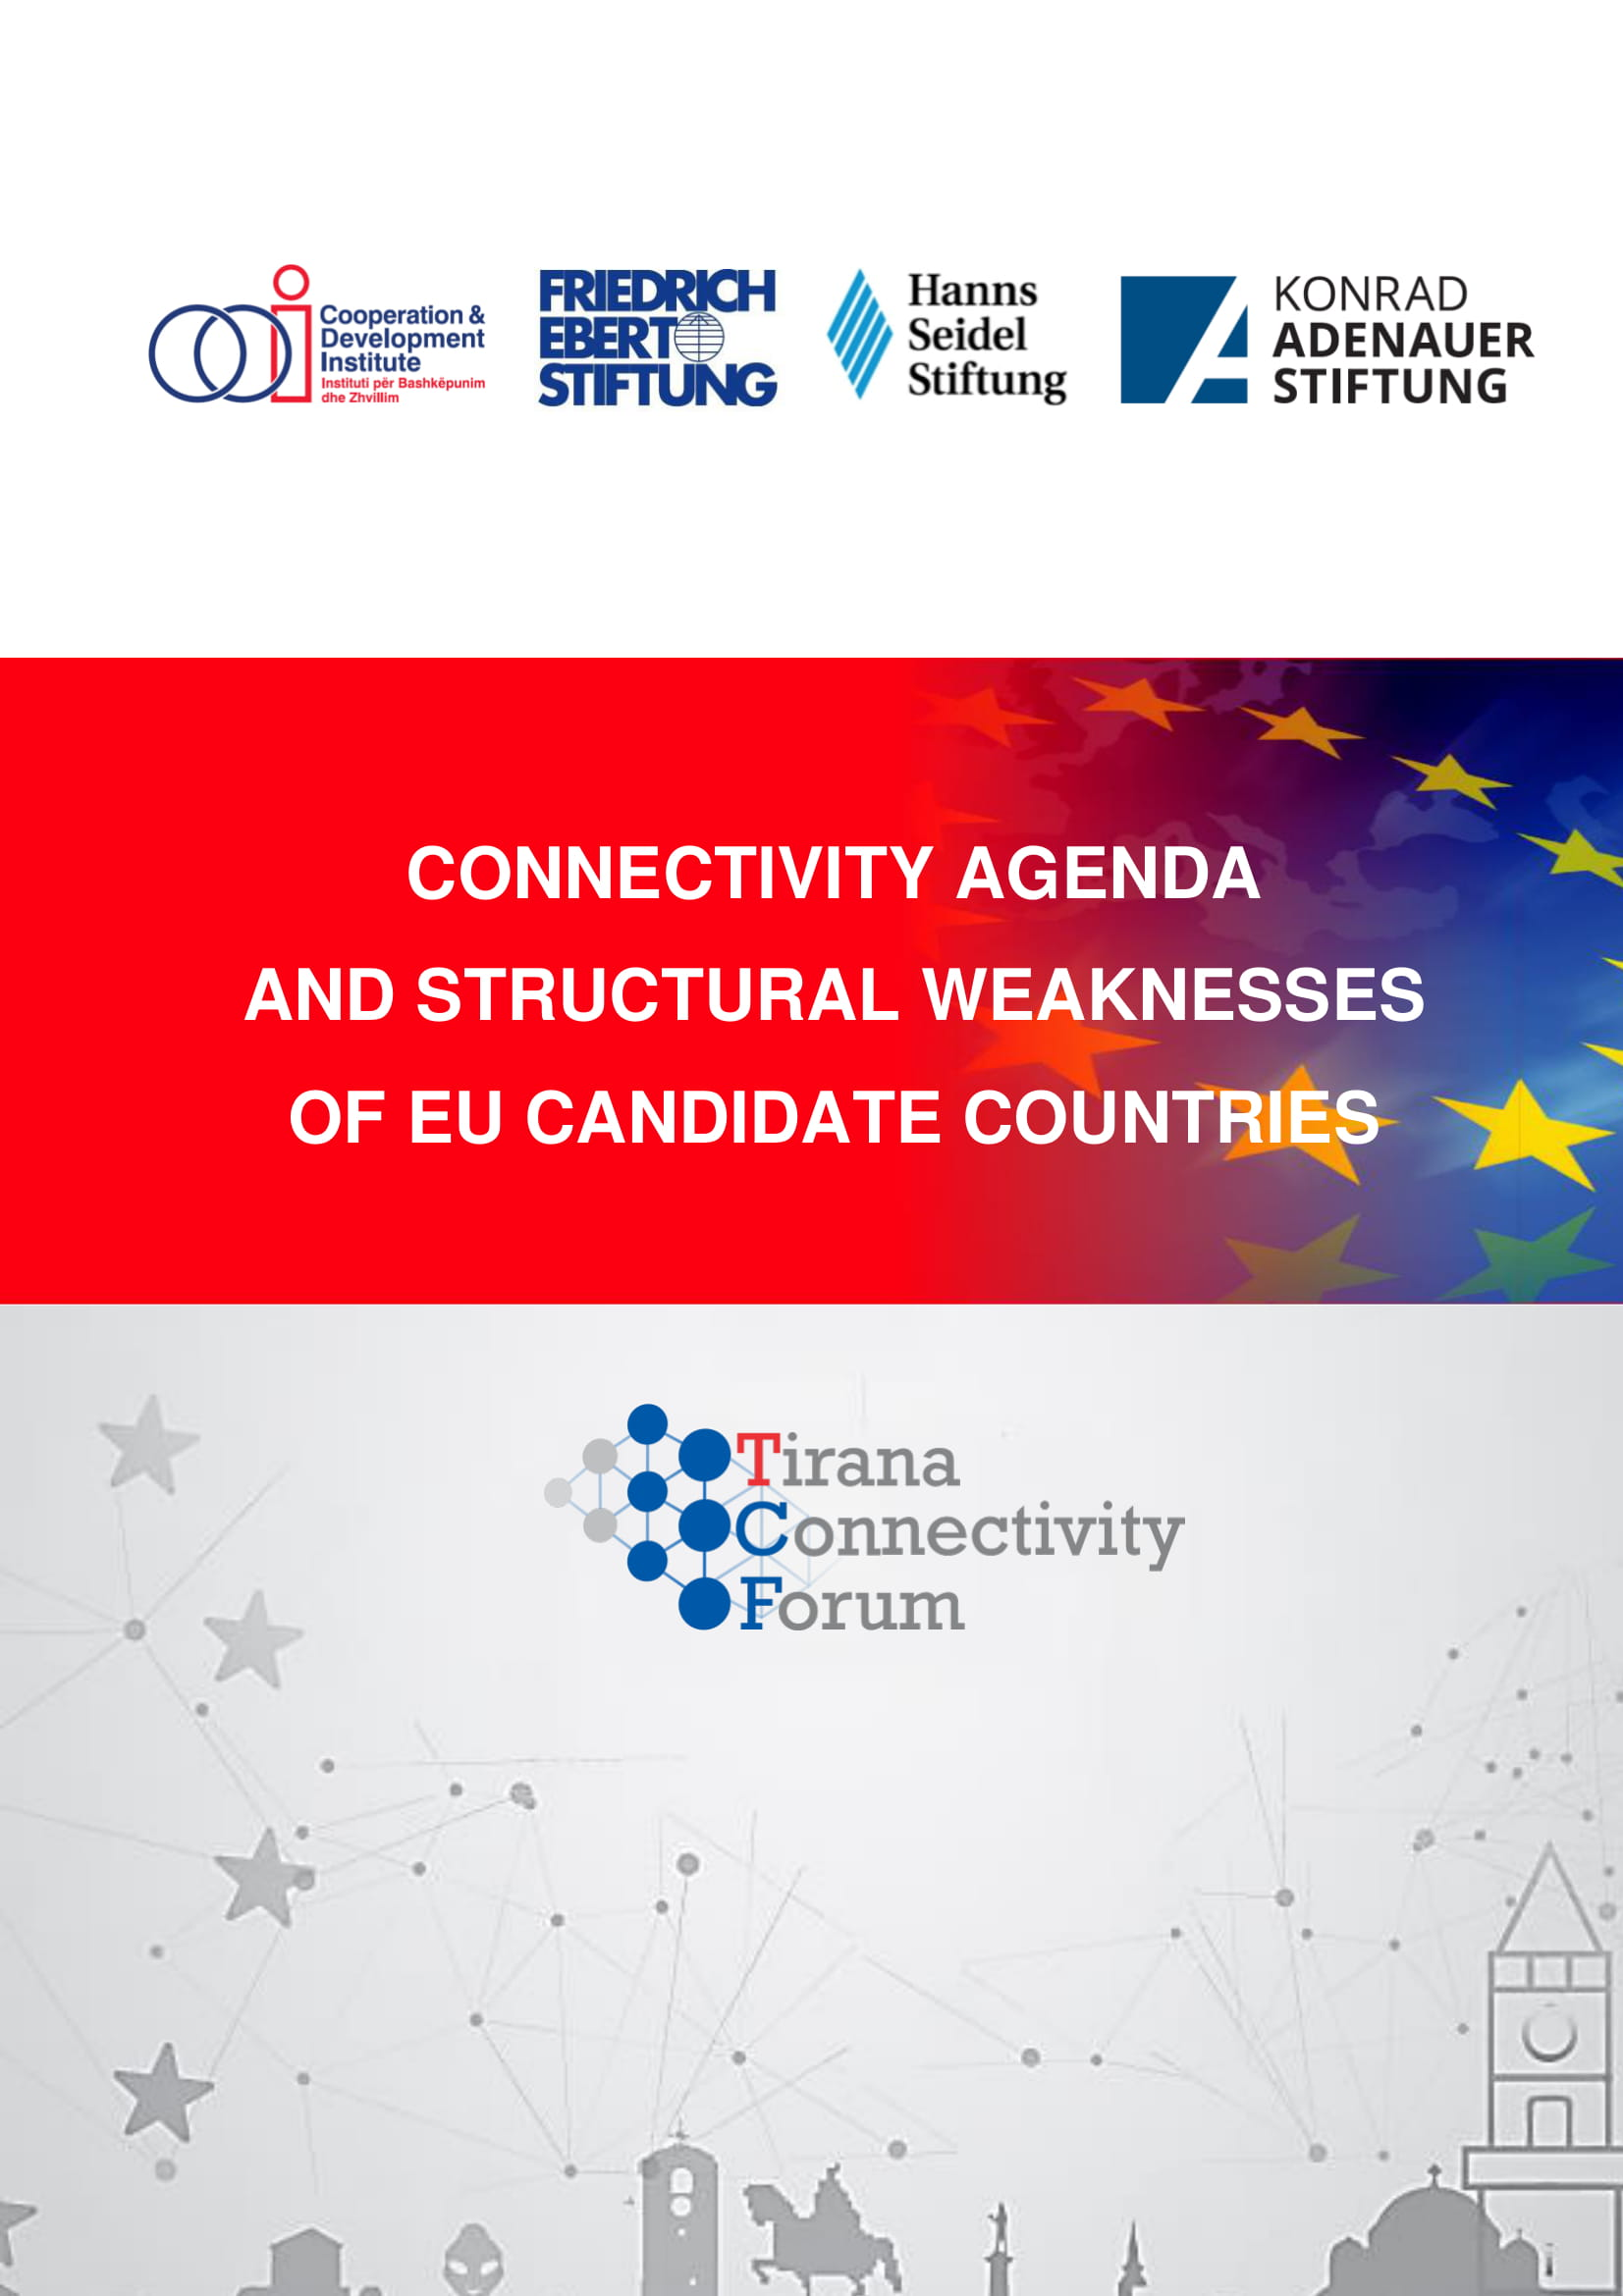 Connectivity Agenda and Structural Weaknesses of EU Candidate Countries